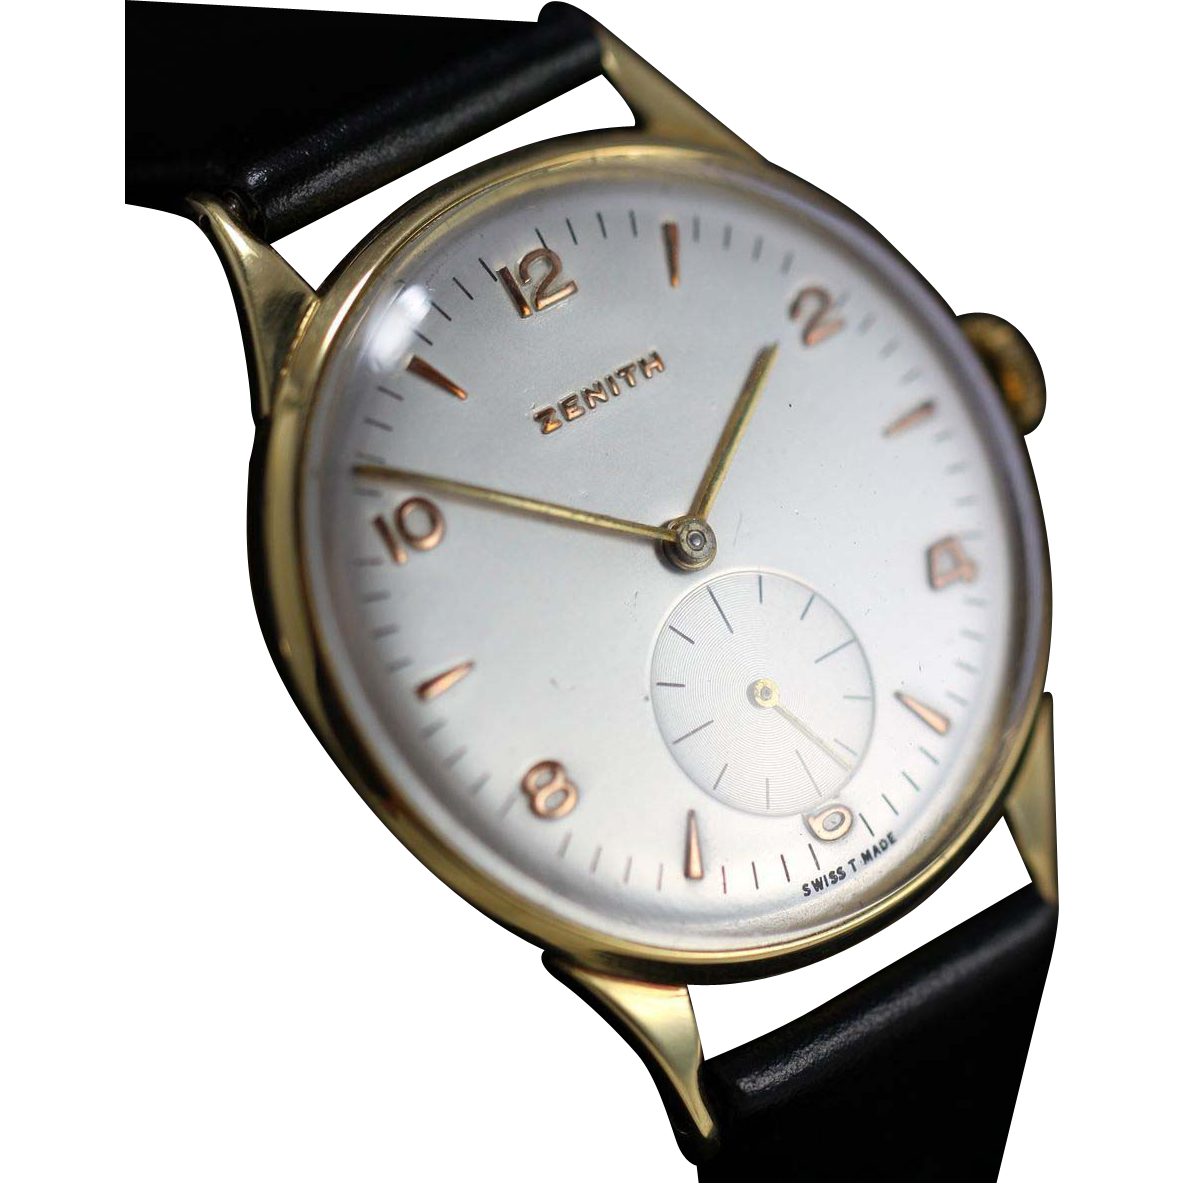 1955 Vintage Zenith 18k Gold Watch From Vintagewatches On